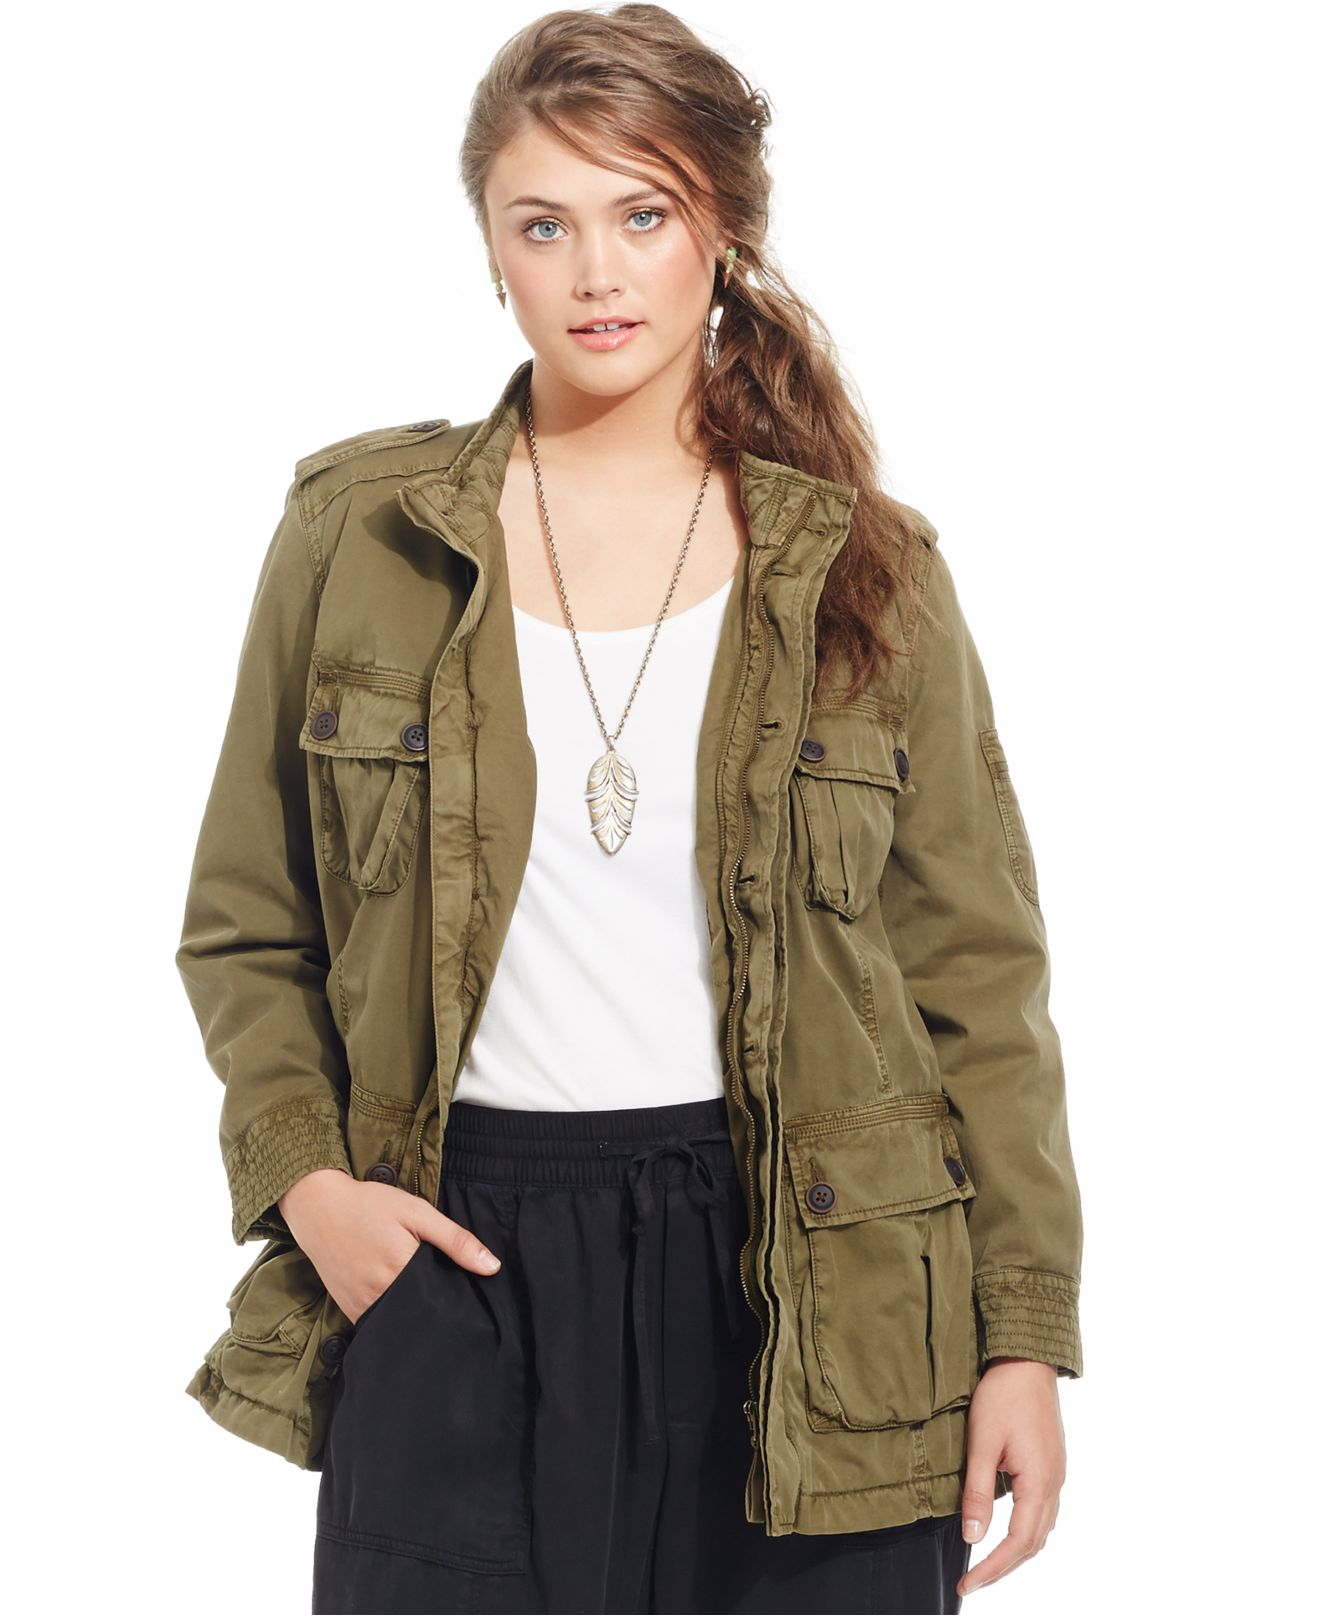 edcecab4ab6 Lyst - Lucky Brand Lucky Brand Plus Size Military Anorak Jacket in Green